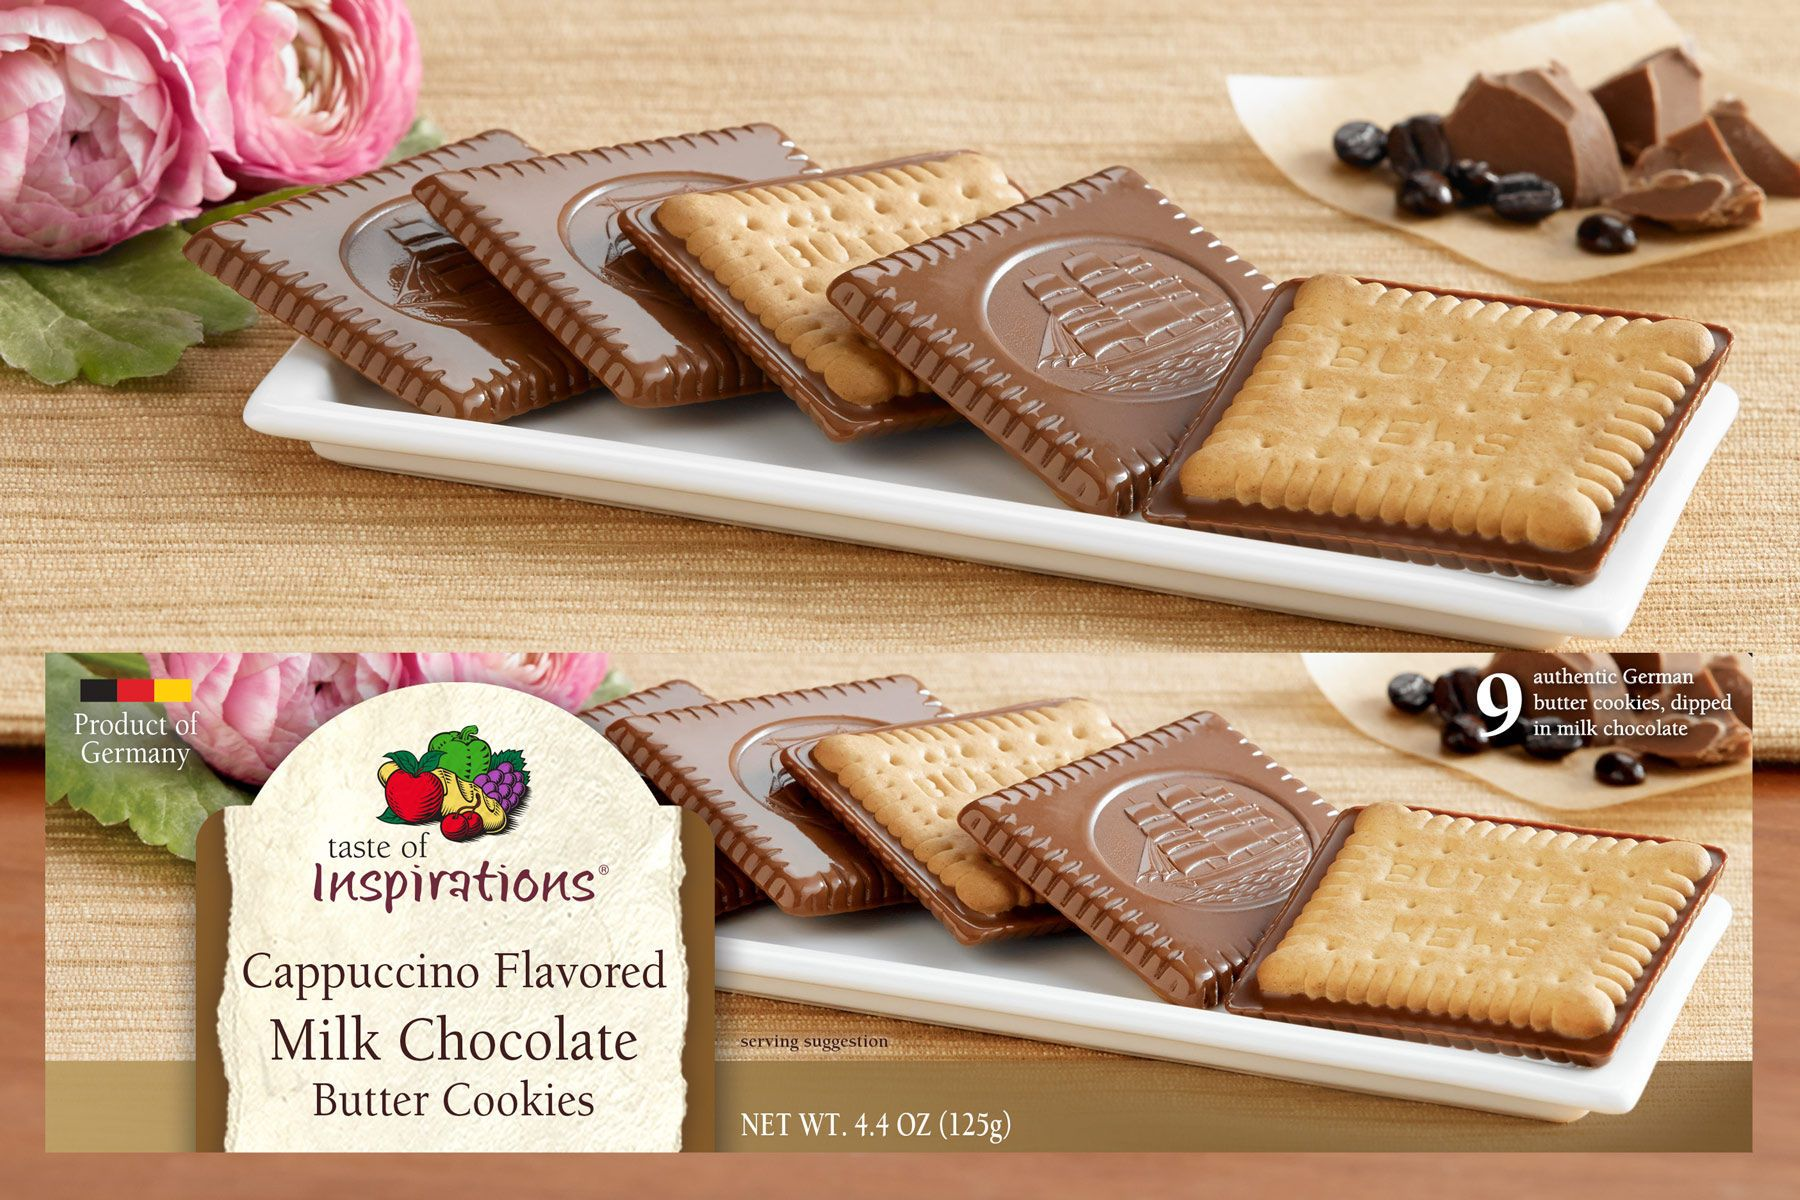 Taste of Inspirations Cookies for DelHaize America